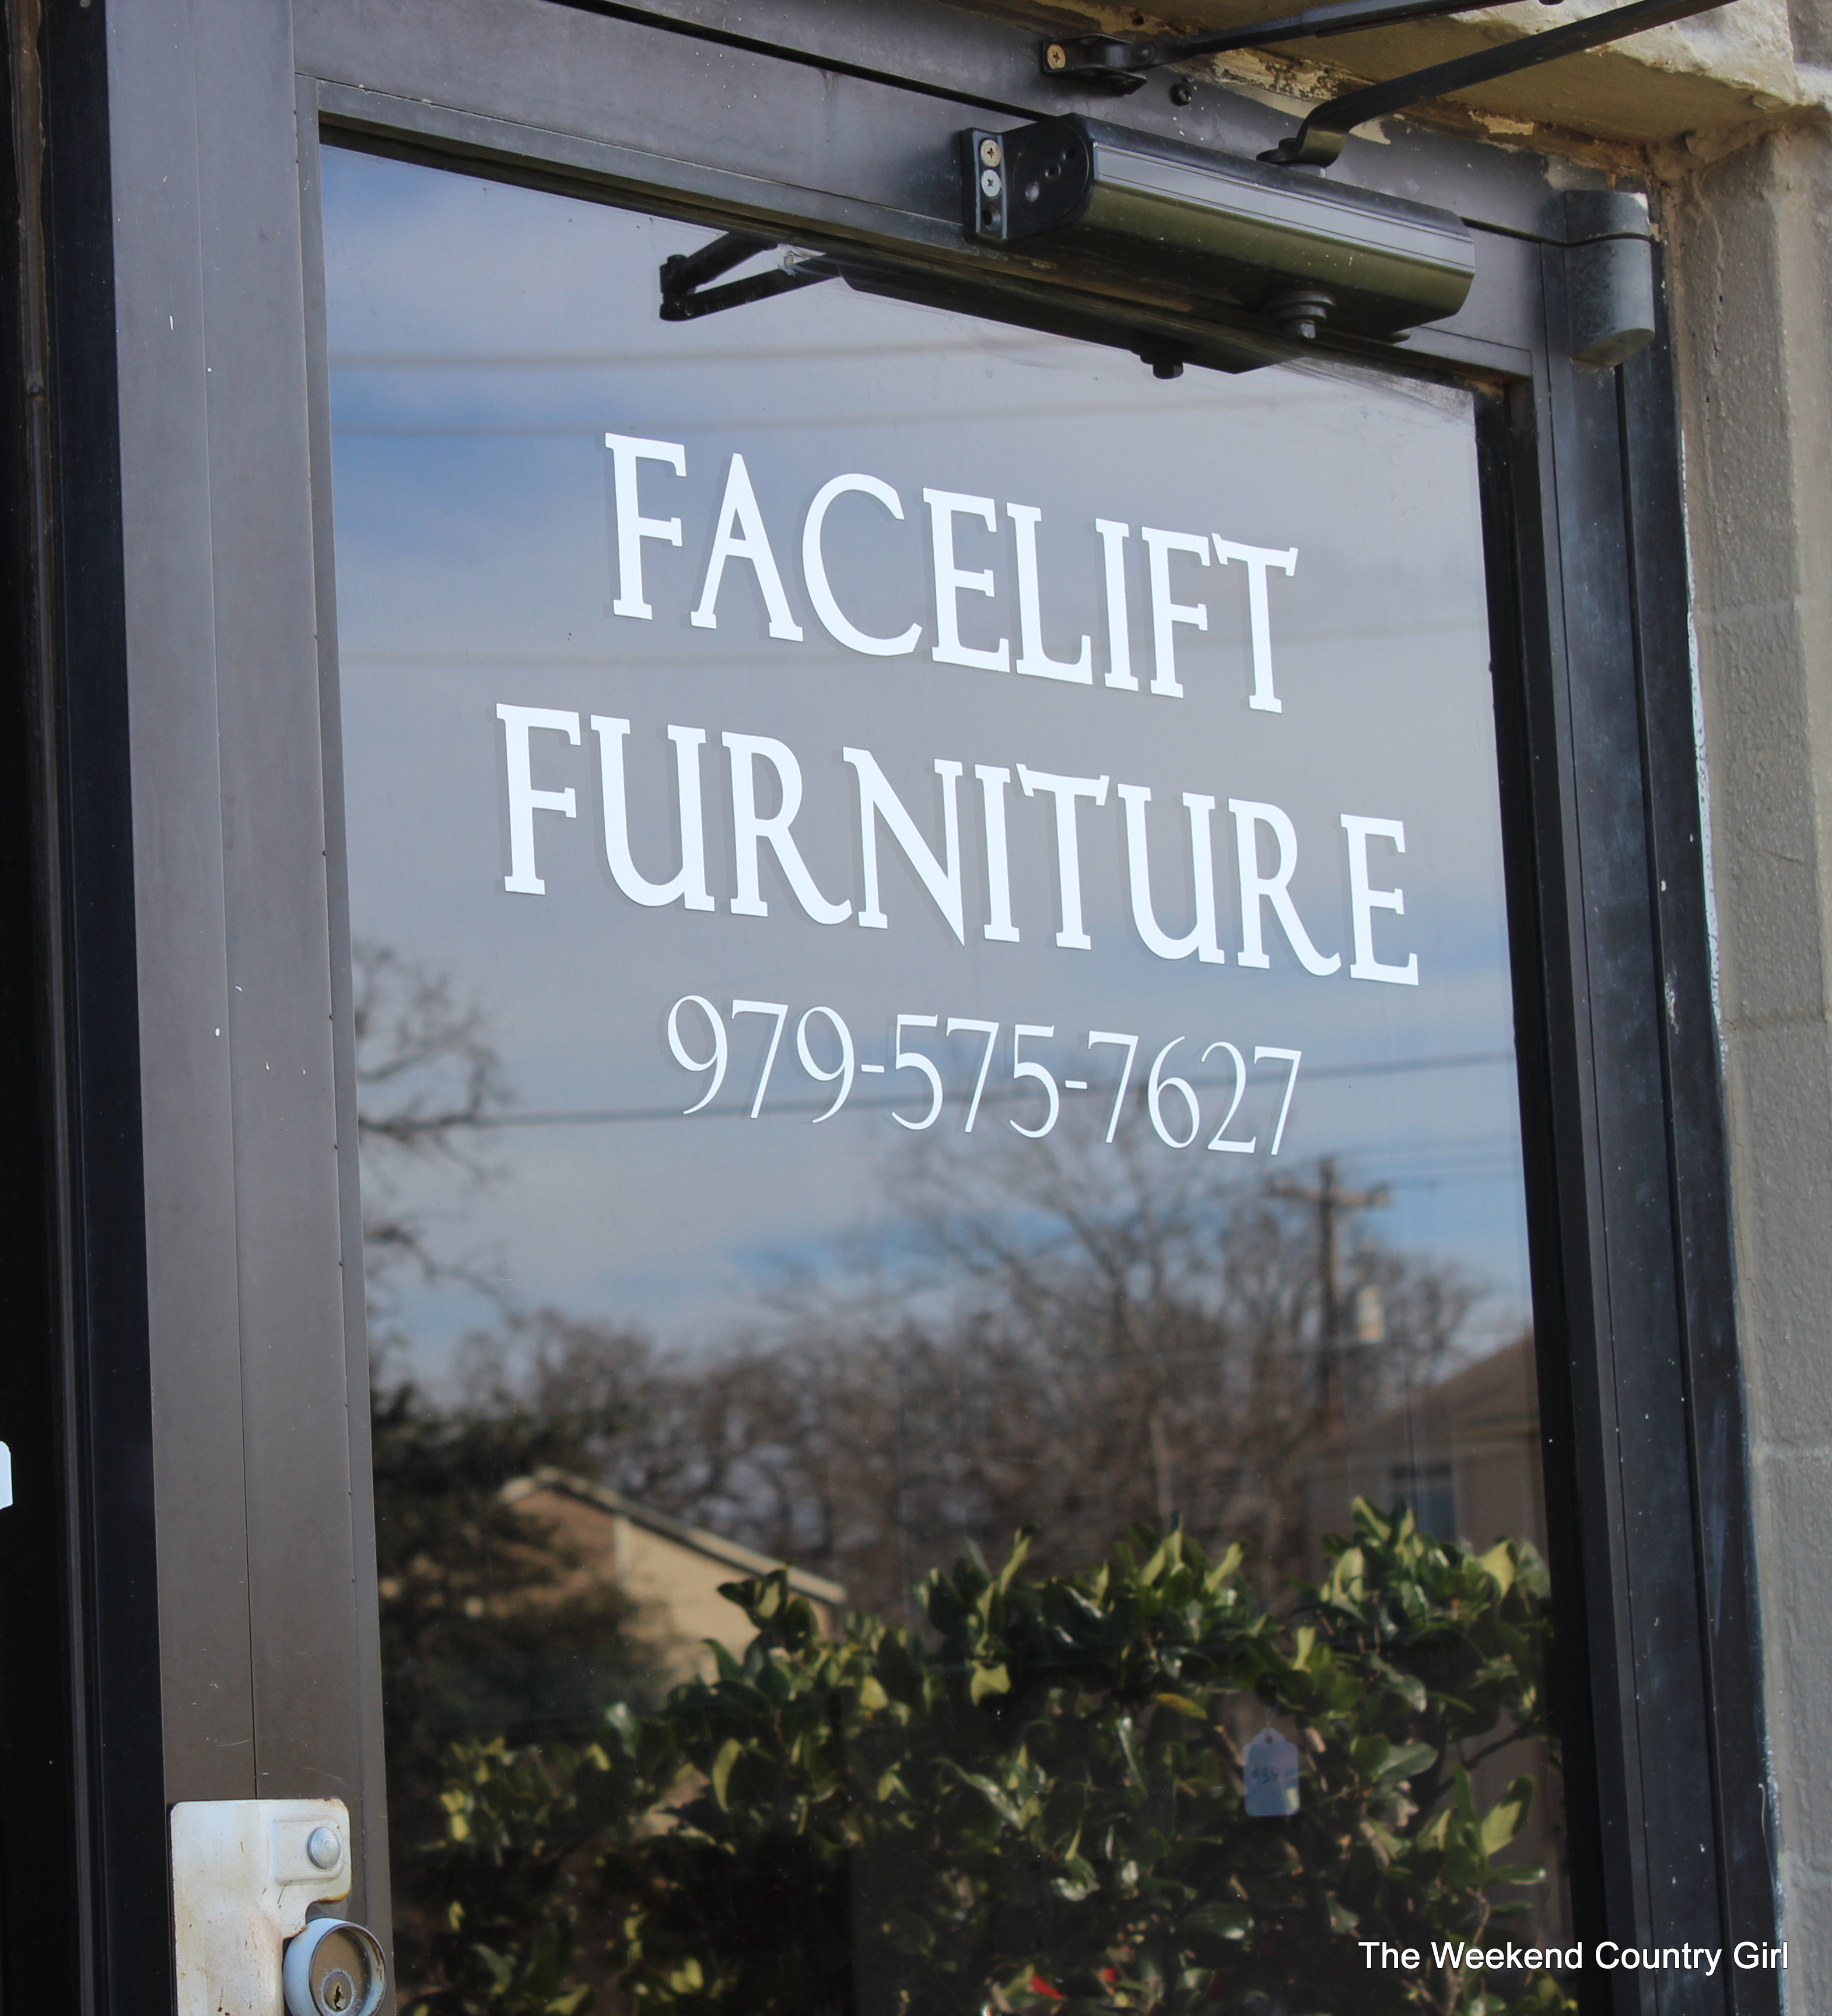 Visiting Facelift Furniture The Weekend Country Girl